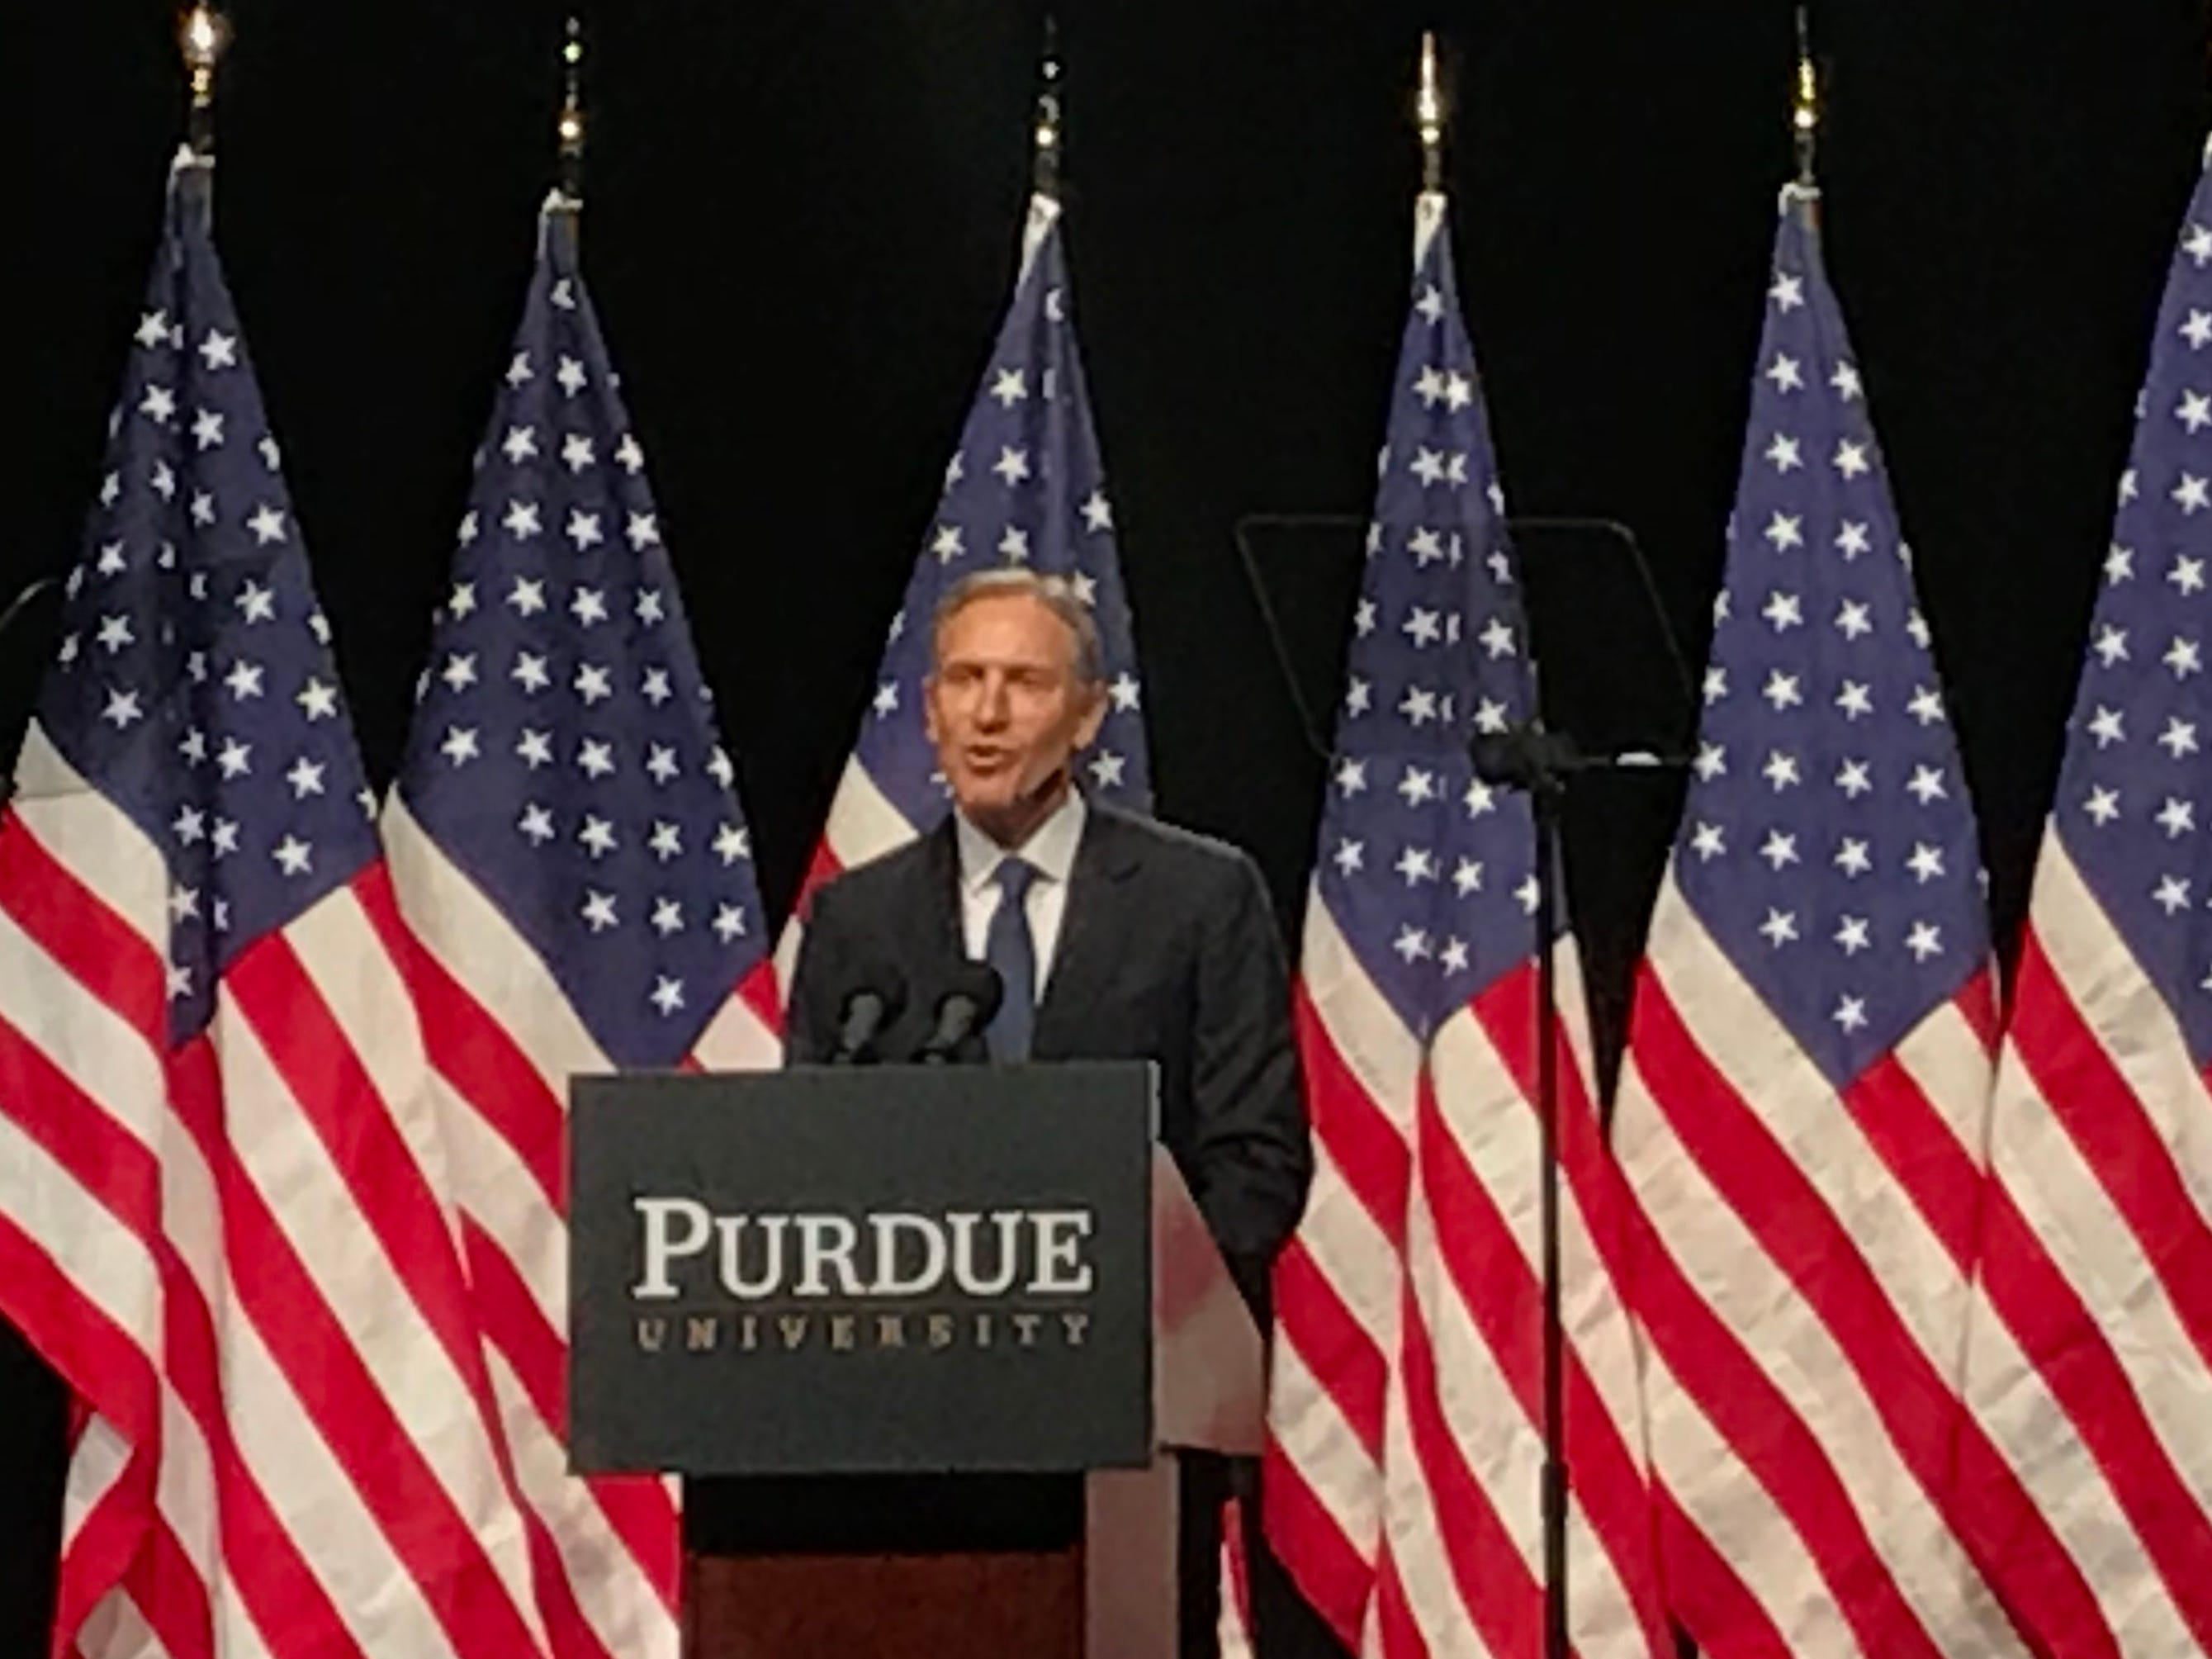 Former Starbucks CEO Howard Schultz spoke at Purdue on Thursday, February 7, 2019. Schultz confirmed that he was considering a presidential run in 2020 as an Independent and responded to criticism that he would siphon votes from Democrats.